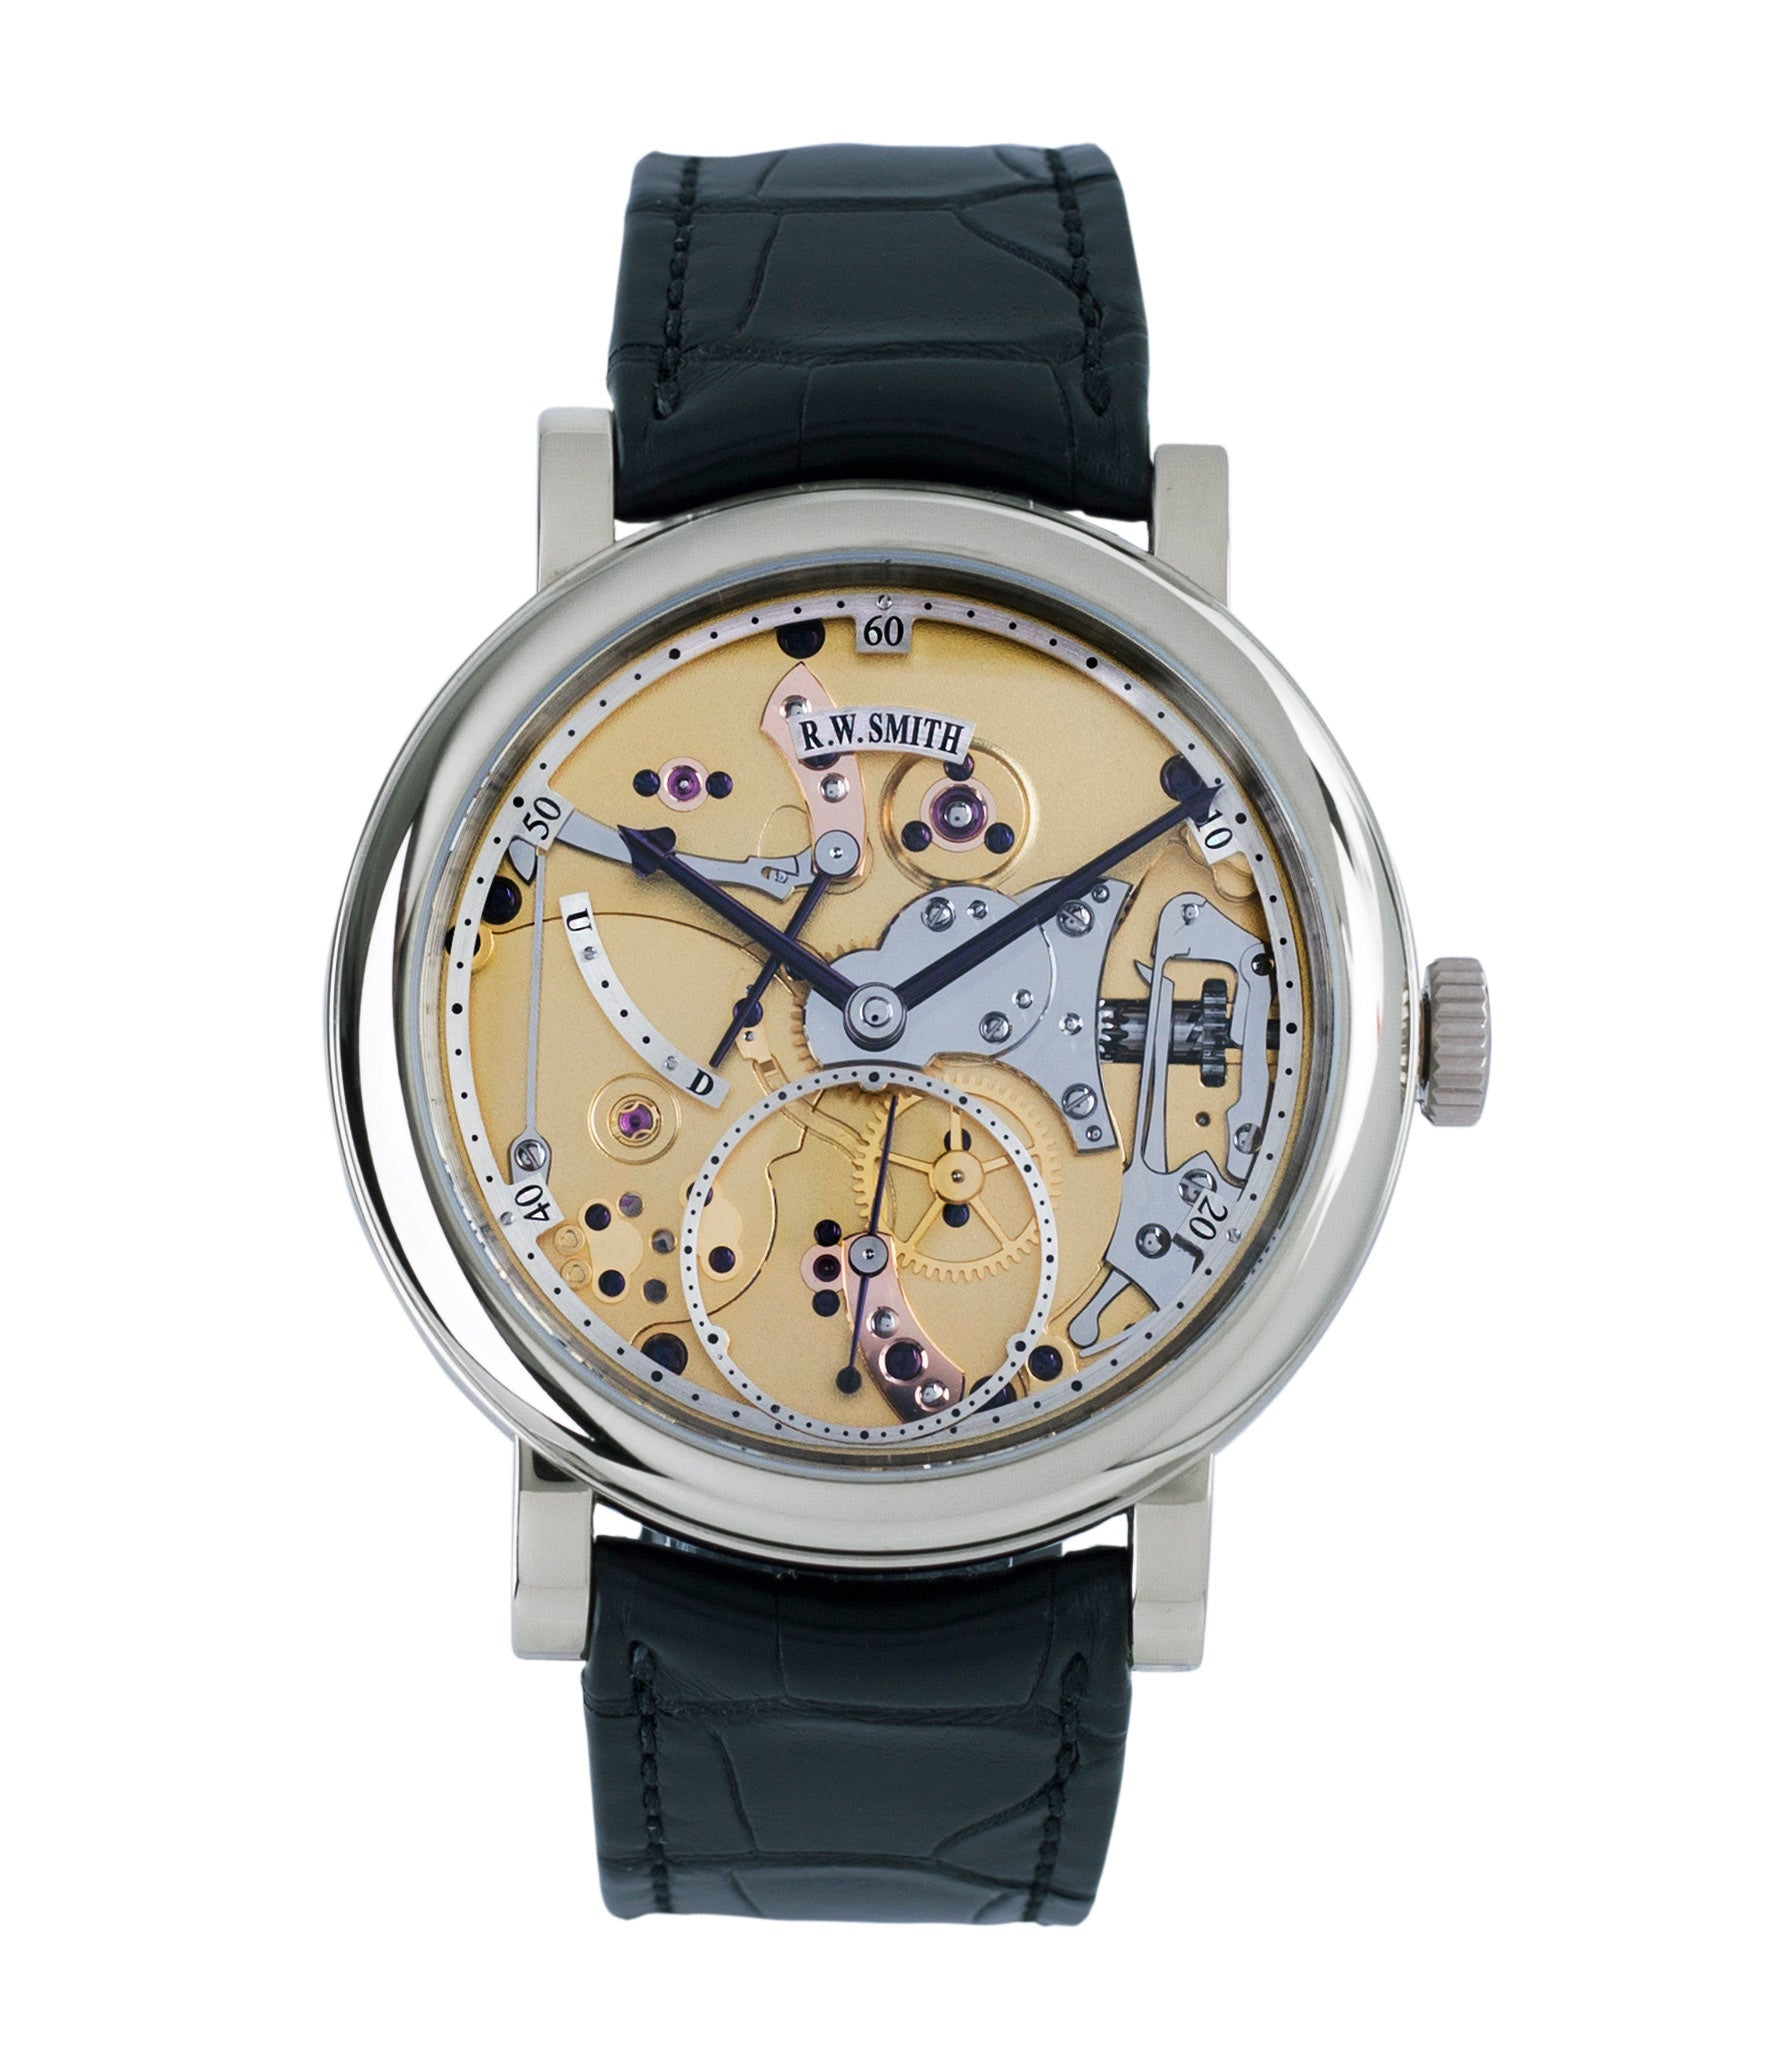 buy Roger Smith Series 2 Open Dial white gold new watch for sale online at A Collected Man London specialist approved seller of independent watchmakers UK